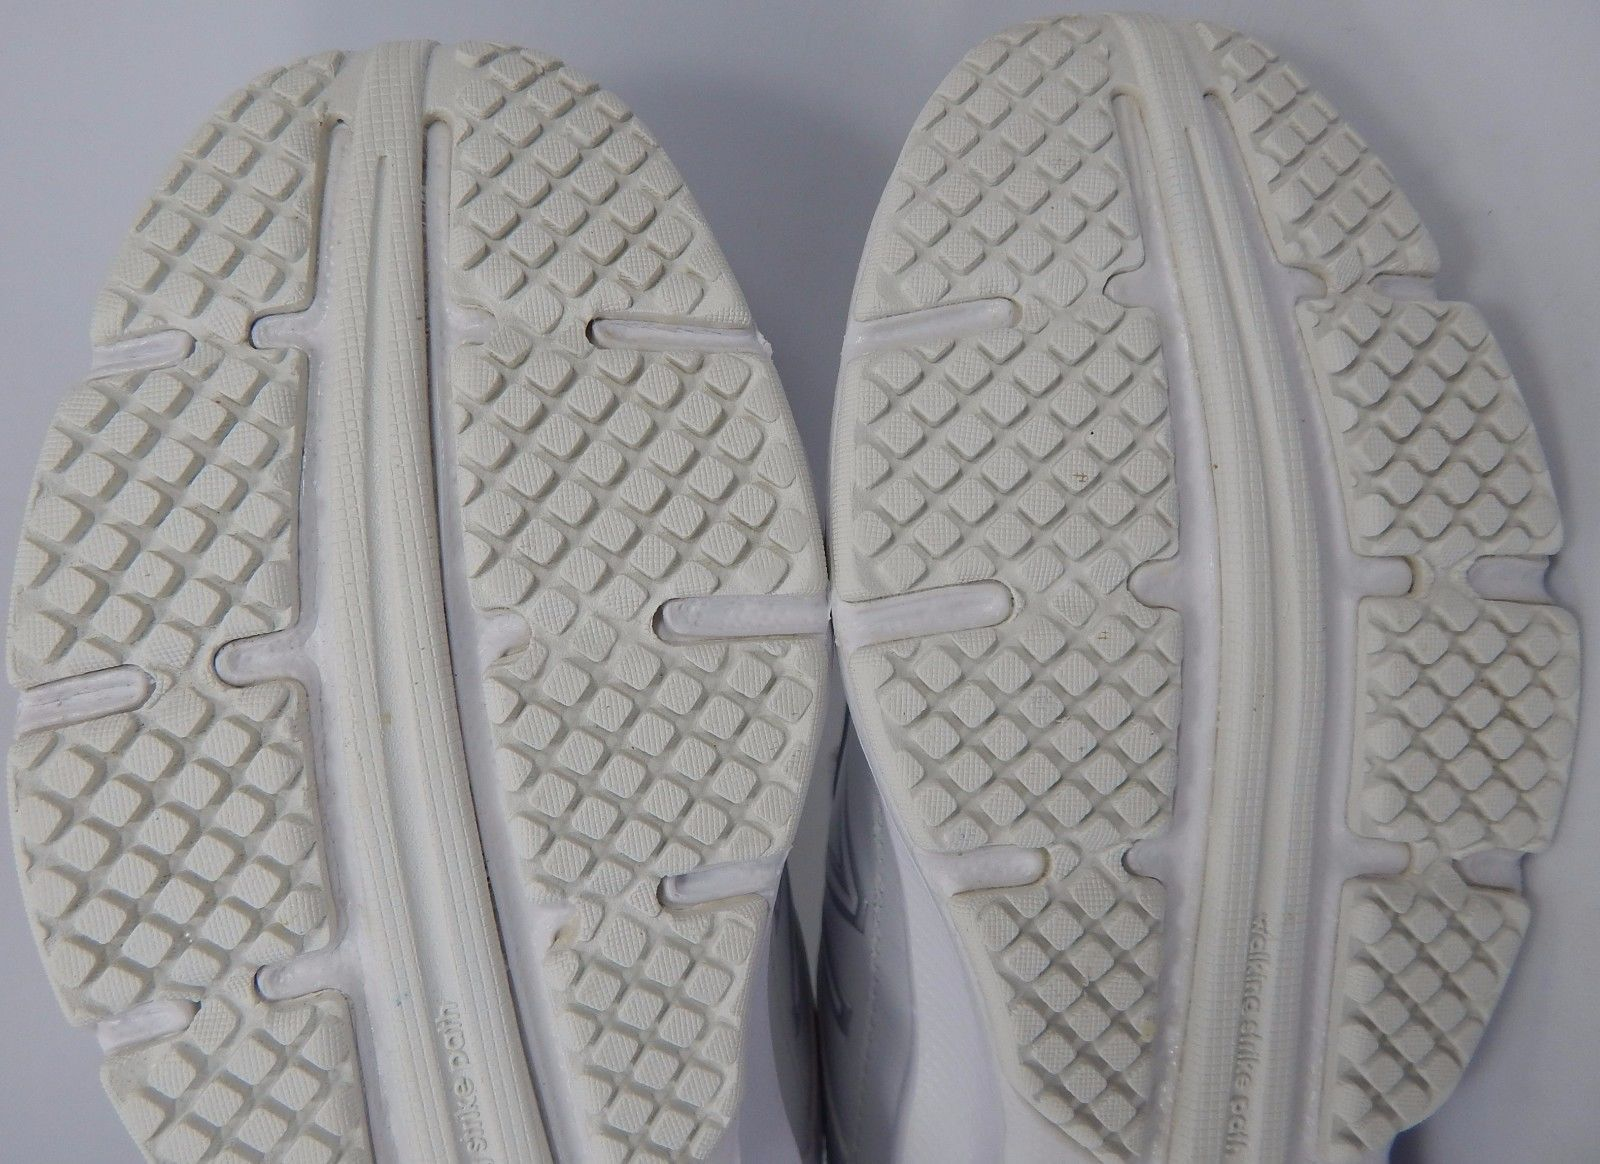 New Balance 411 Women's Walking Shoes Size US 6.5 M (B) EU 37 White WW411HWT